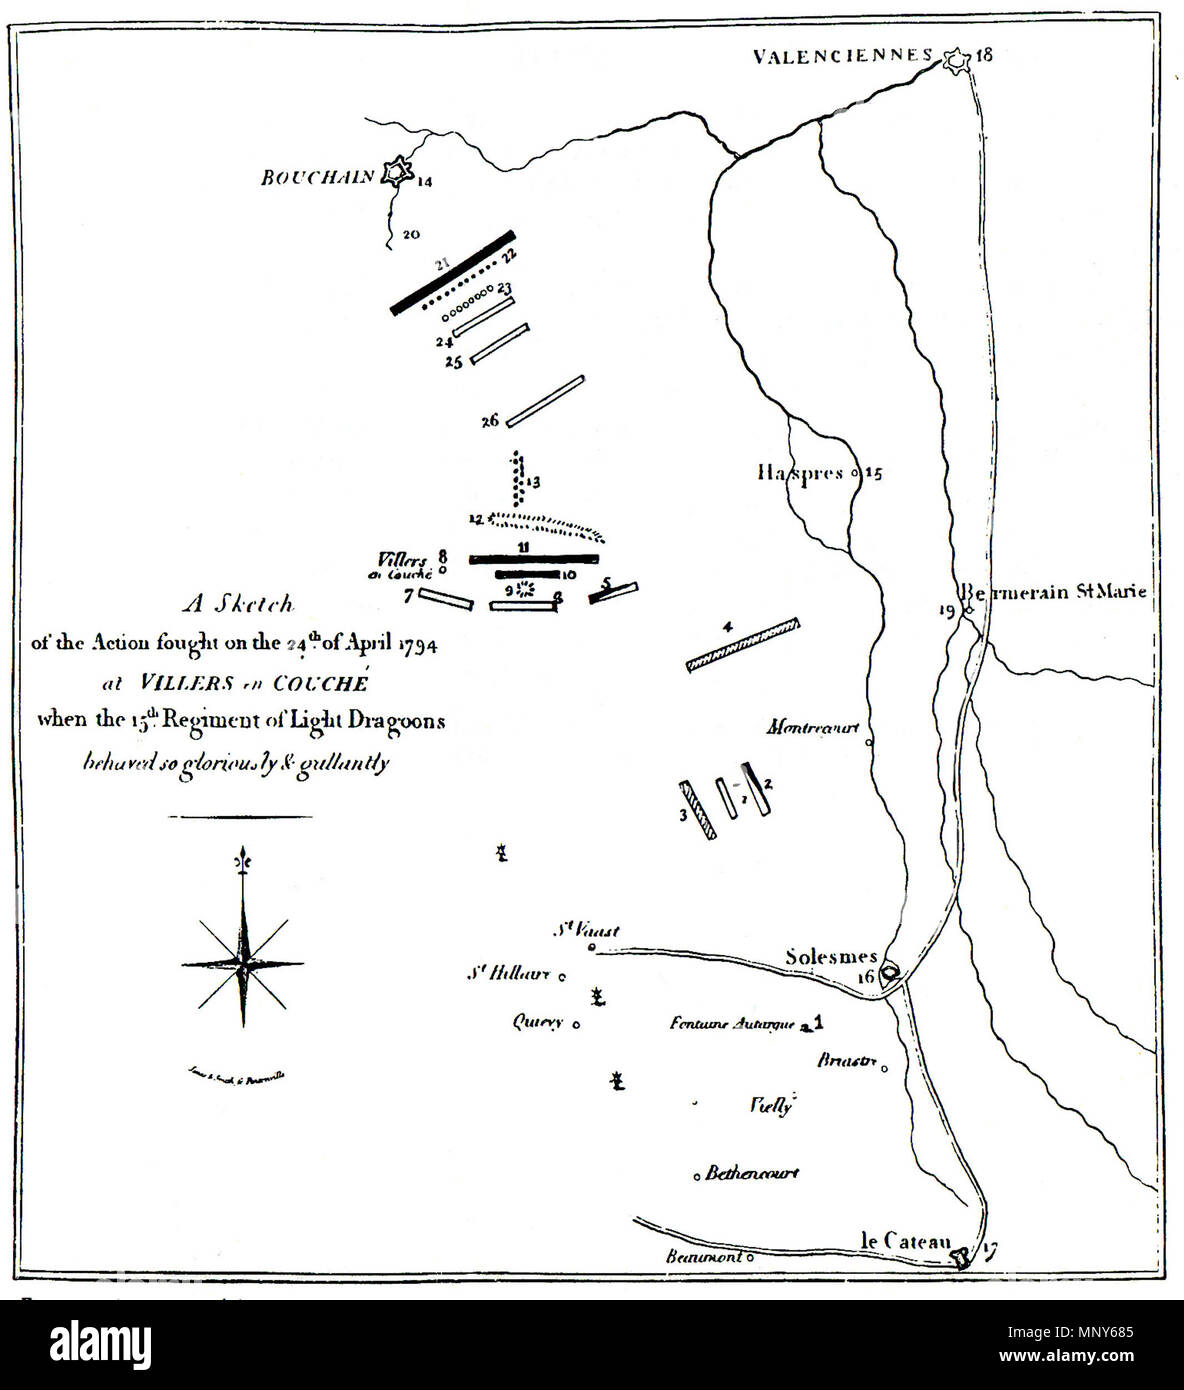 . English: The Action at Villers-en-Cauchies 24th April 1794, reproduced in XVth (The King's Hussars) 1759 to 1913 (Colonel H. C. Wylly, Caxton Publishing 1914) Numerical Description of the Sketch of the Action of April 24, 1794 1.Fontaine au Targue, a farm-house, where the hussars, the heavy cavalry, and 15th Light Dragoons lay on their army the night previous to the attack. 2. The 15th Light Dragoons and hussars marching to the attack. 3. The heavy cavalry marching to the attack. 4. The heavy cavalry hear abandoned the light dragoons. 5. Austrian Hussars. 6. The right squadron of the 15th Li - Stock Image